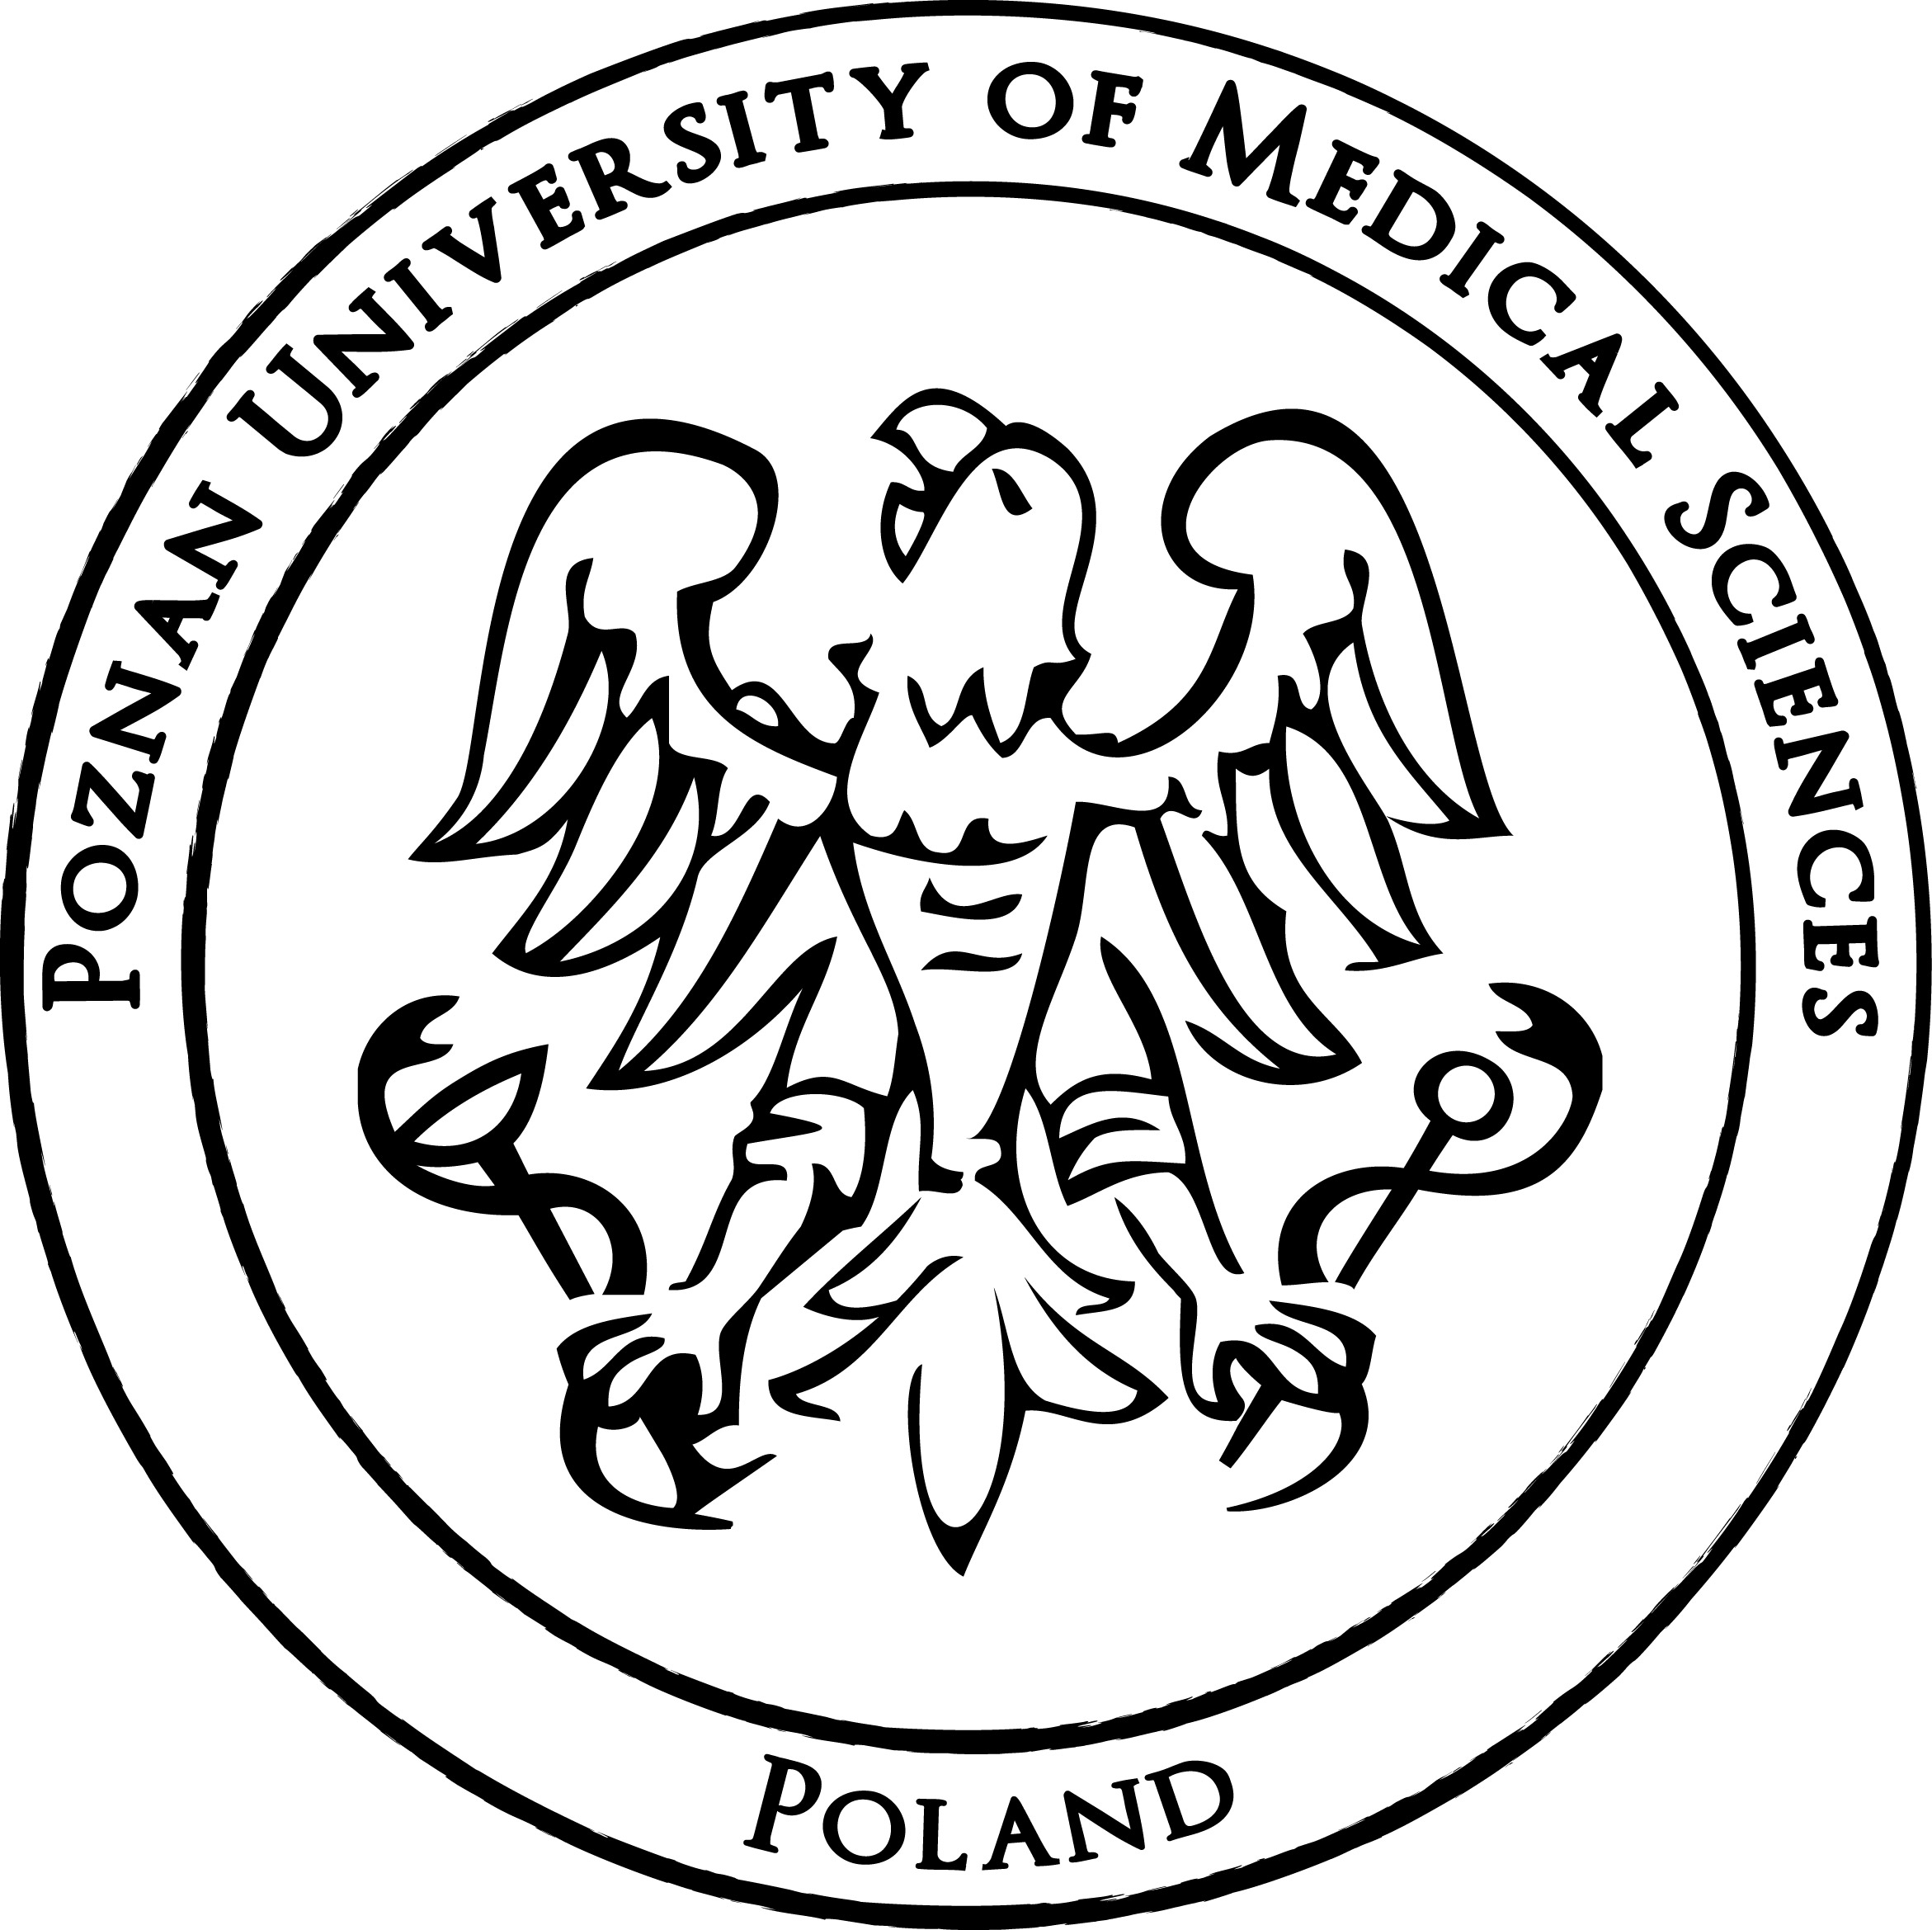 poznan_university_of_medical_science_logo